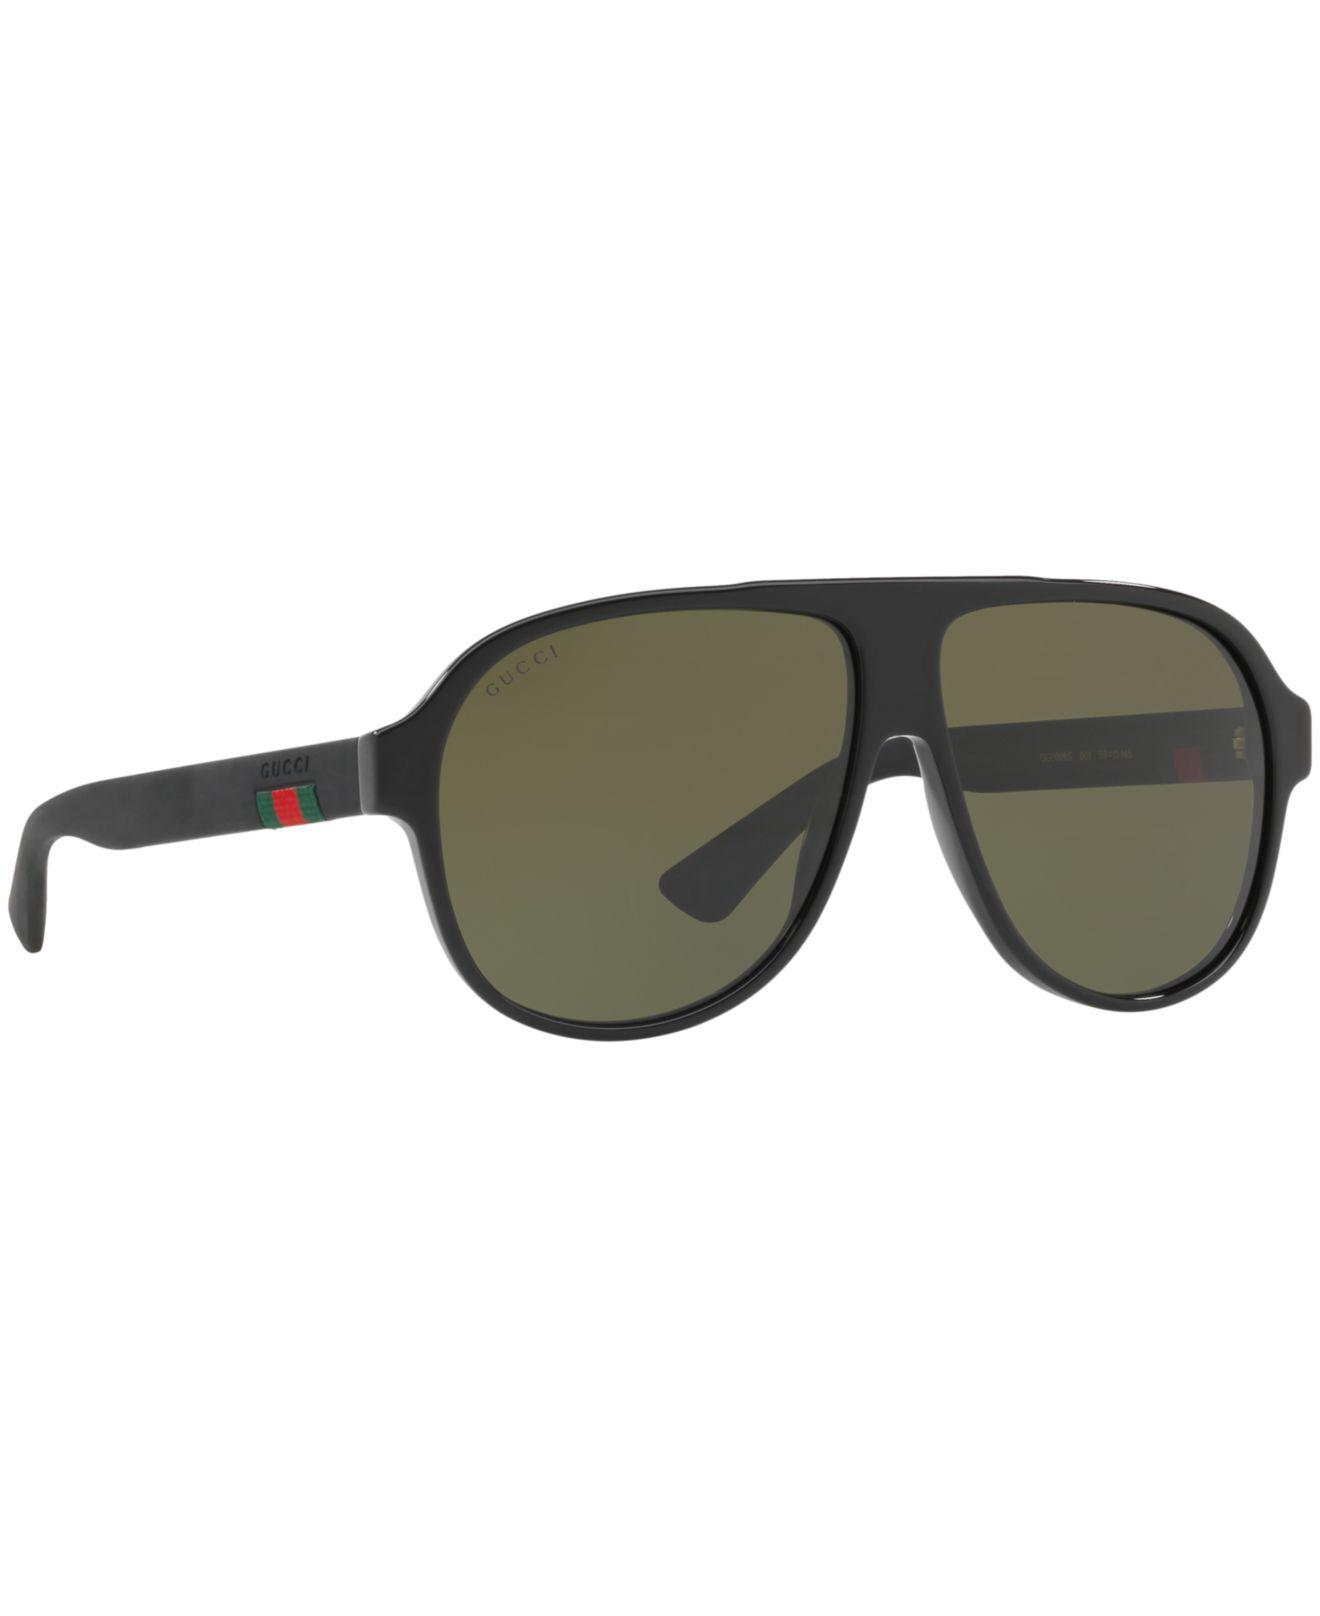 f4101ec223f Gucci - Green Sunglasses